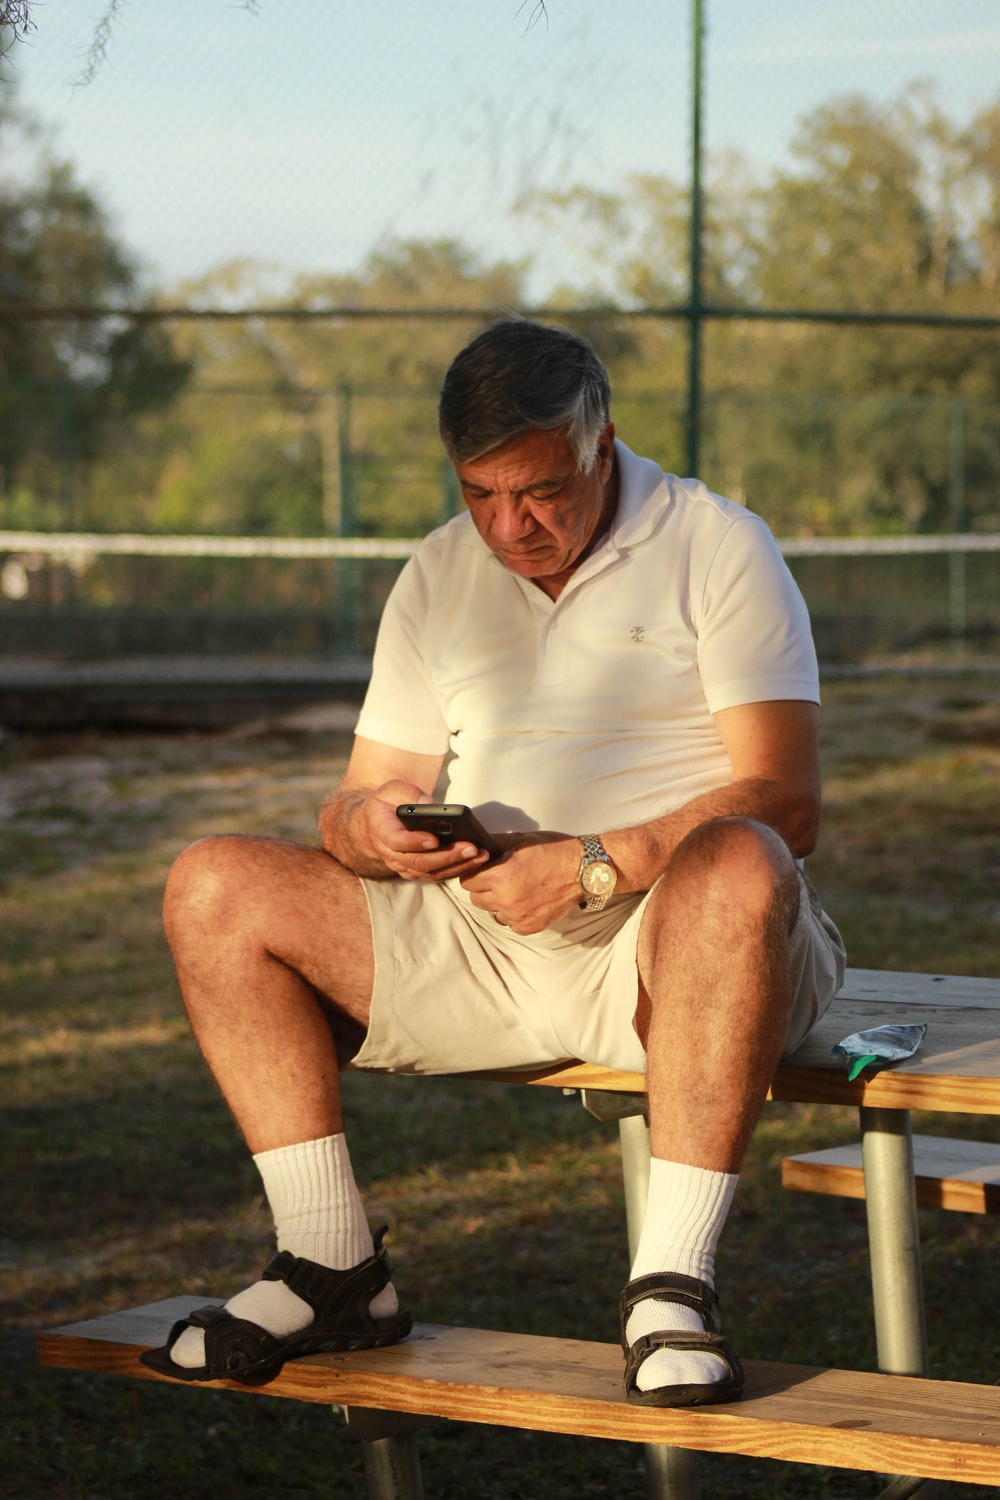 man in white polo shirt and black shorts sitting on brown wooden bench